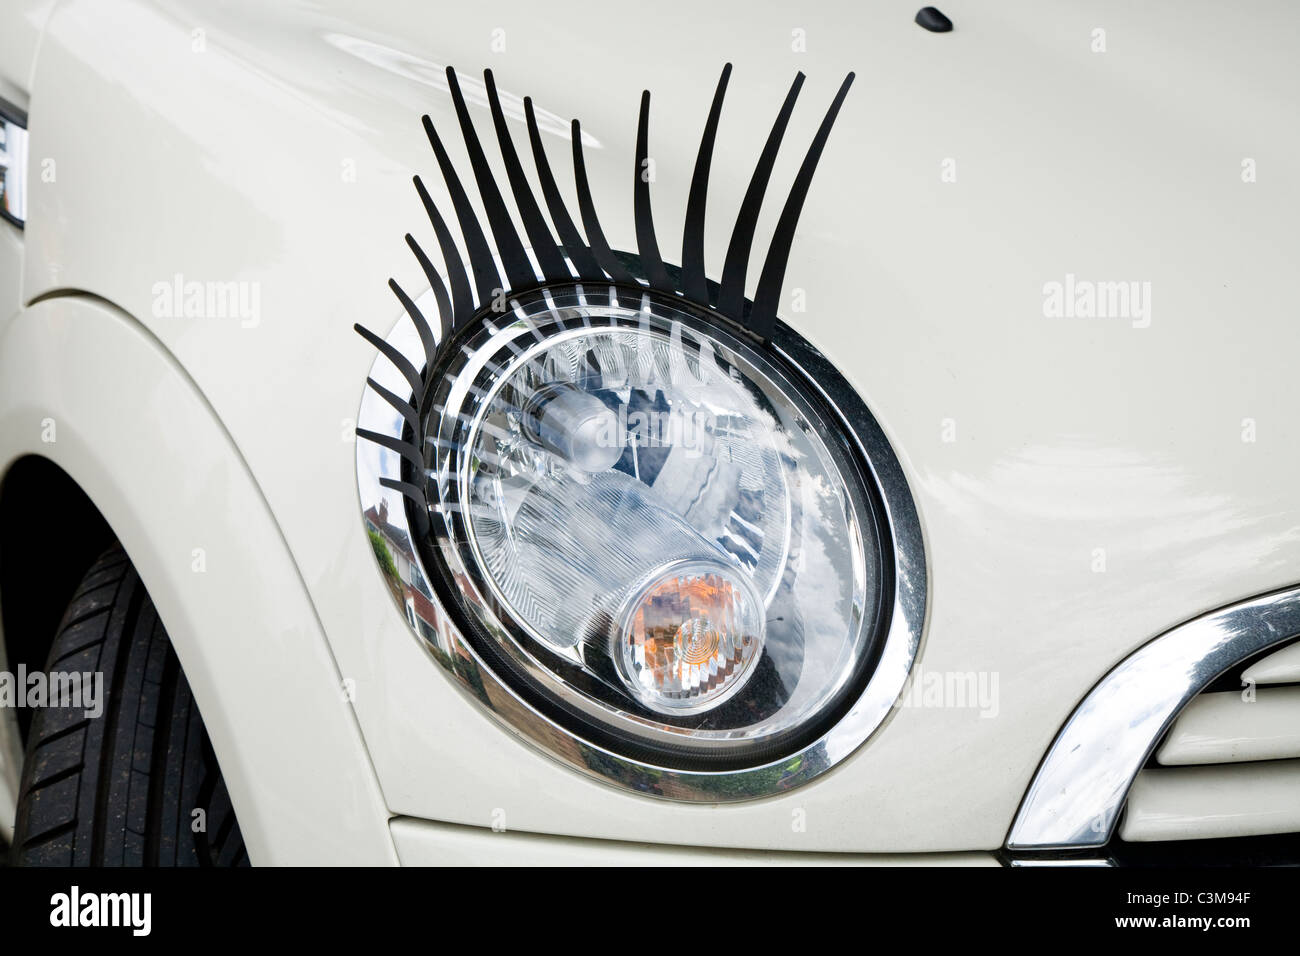 Car Eyelashes Stock Photos Car Eyelashes Stock Images Alamy